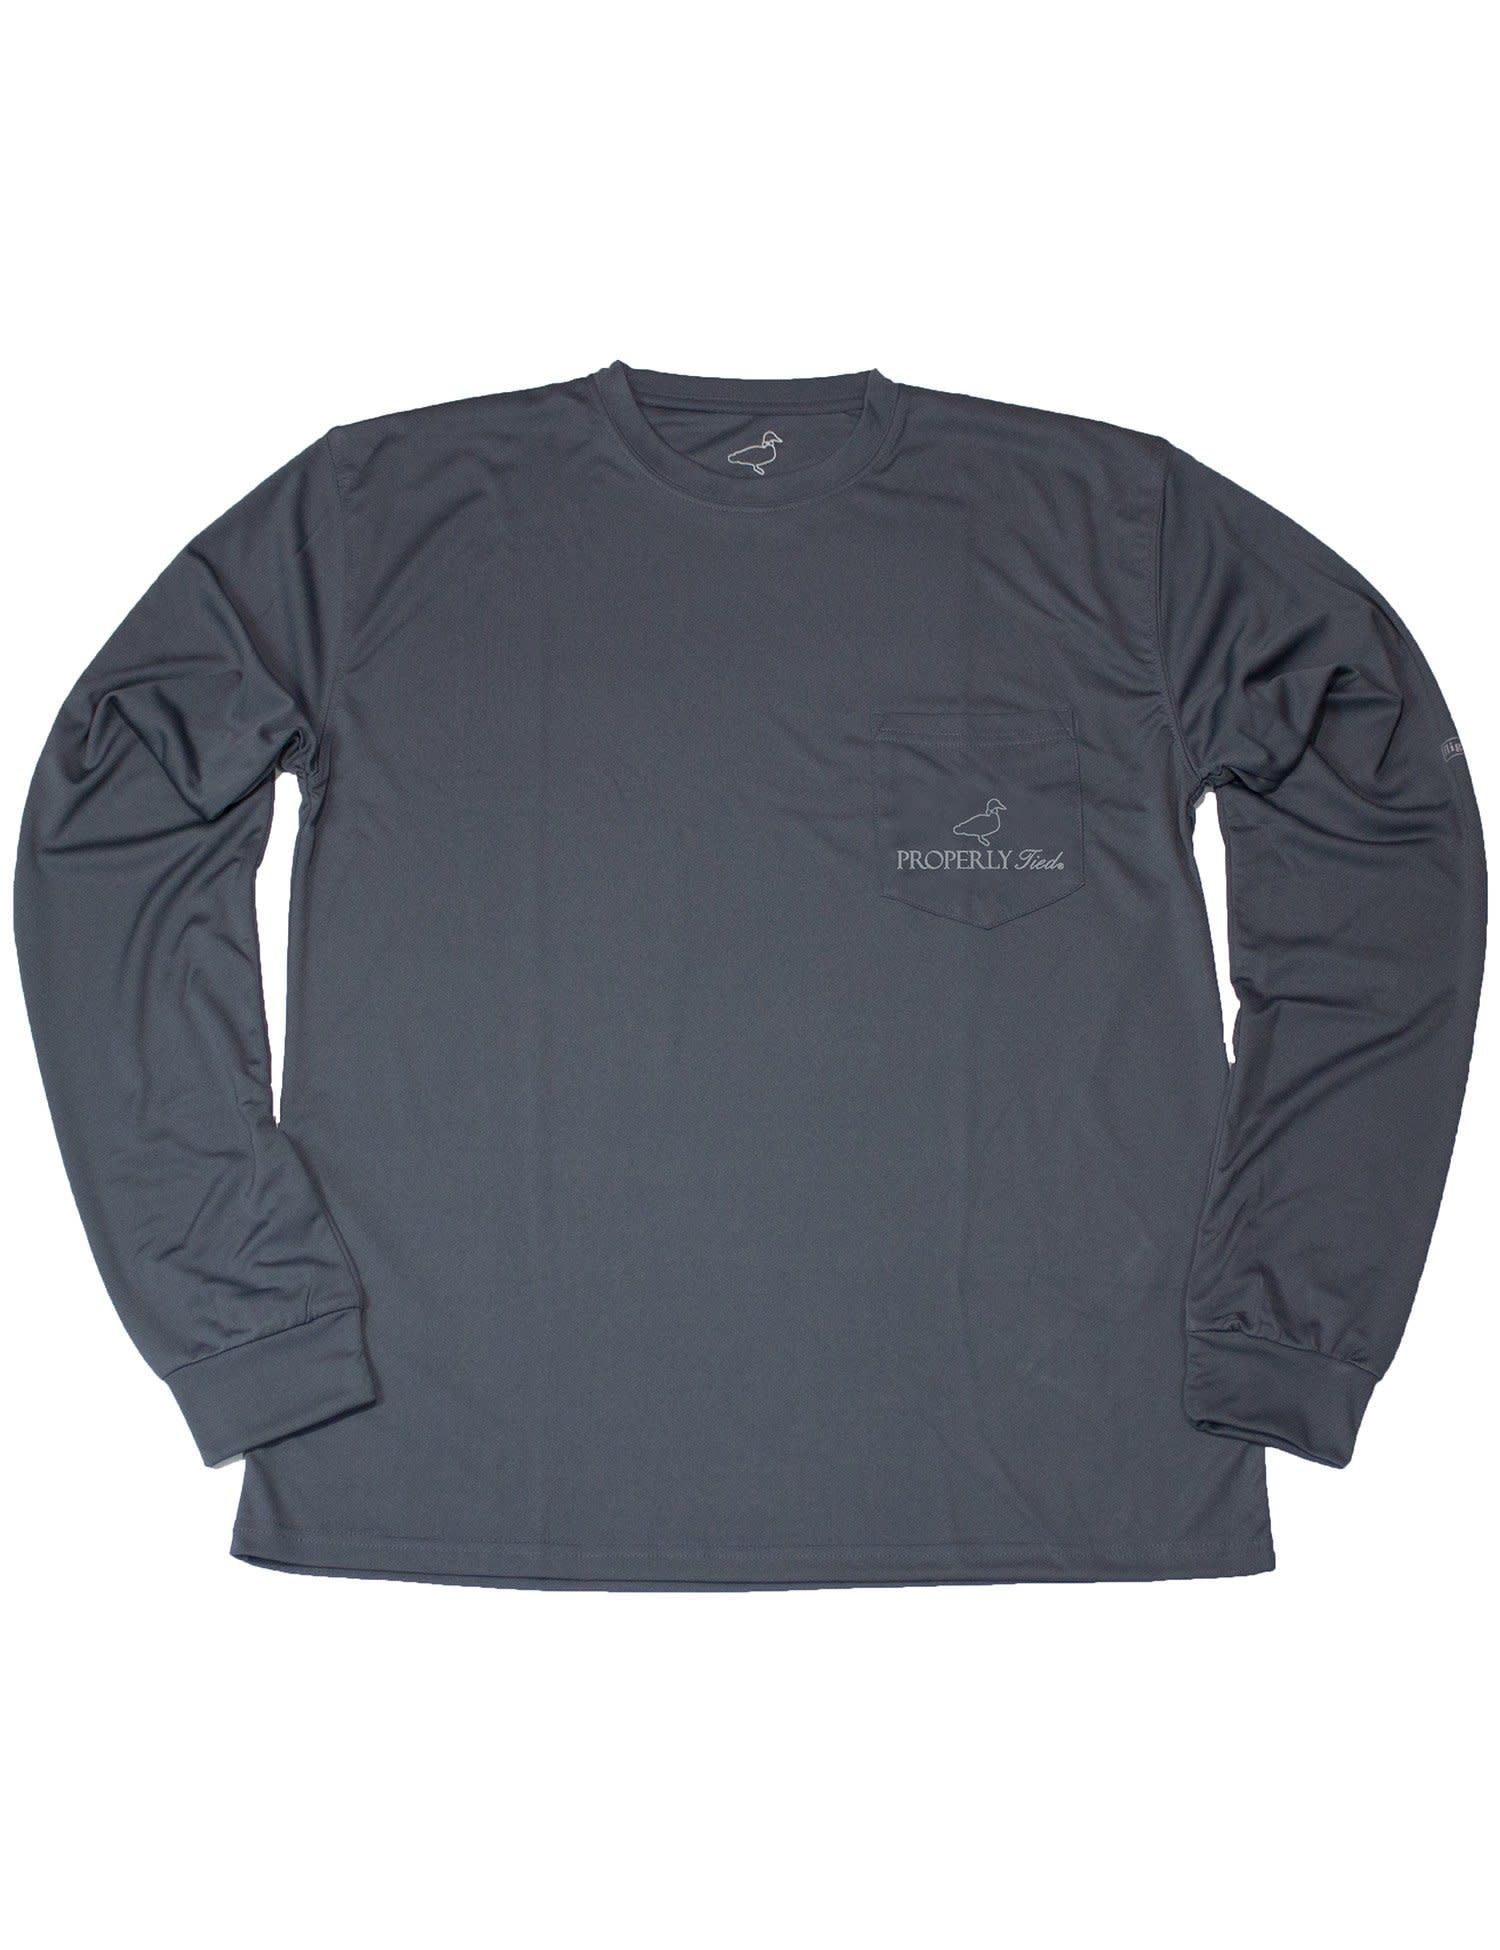 Properly Tied Long Sleeve Sports Tops